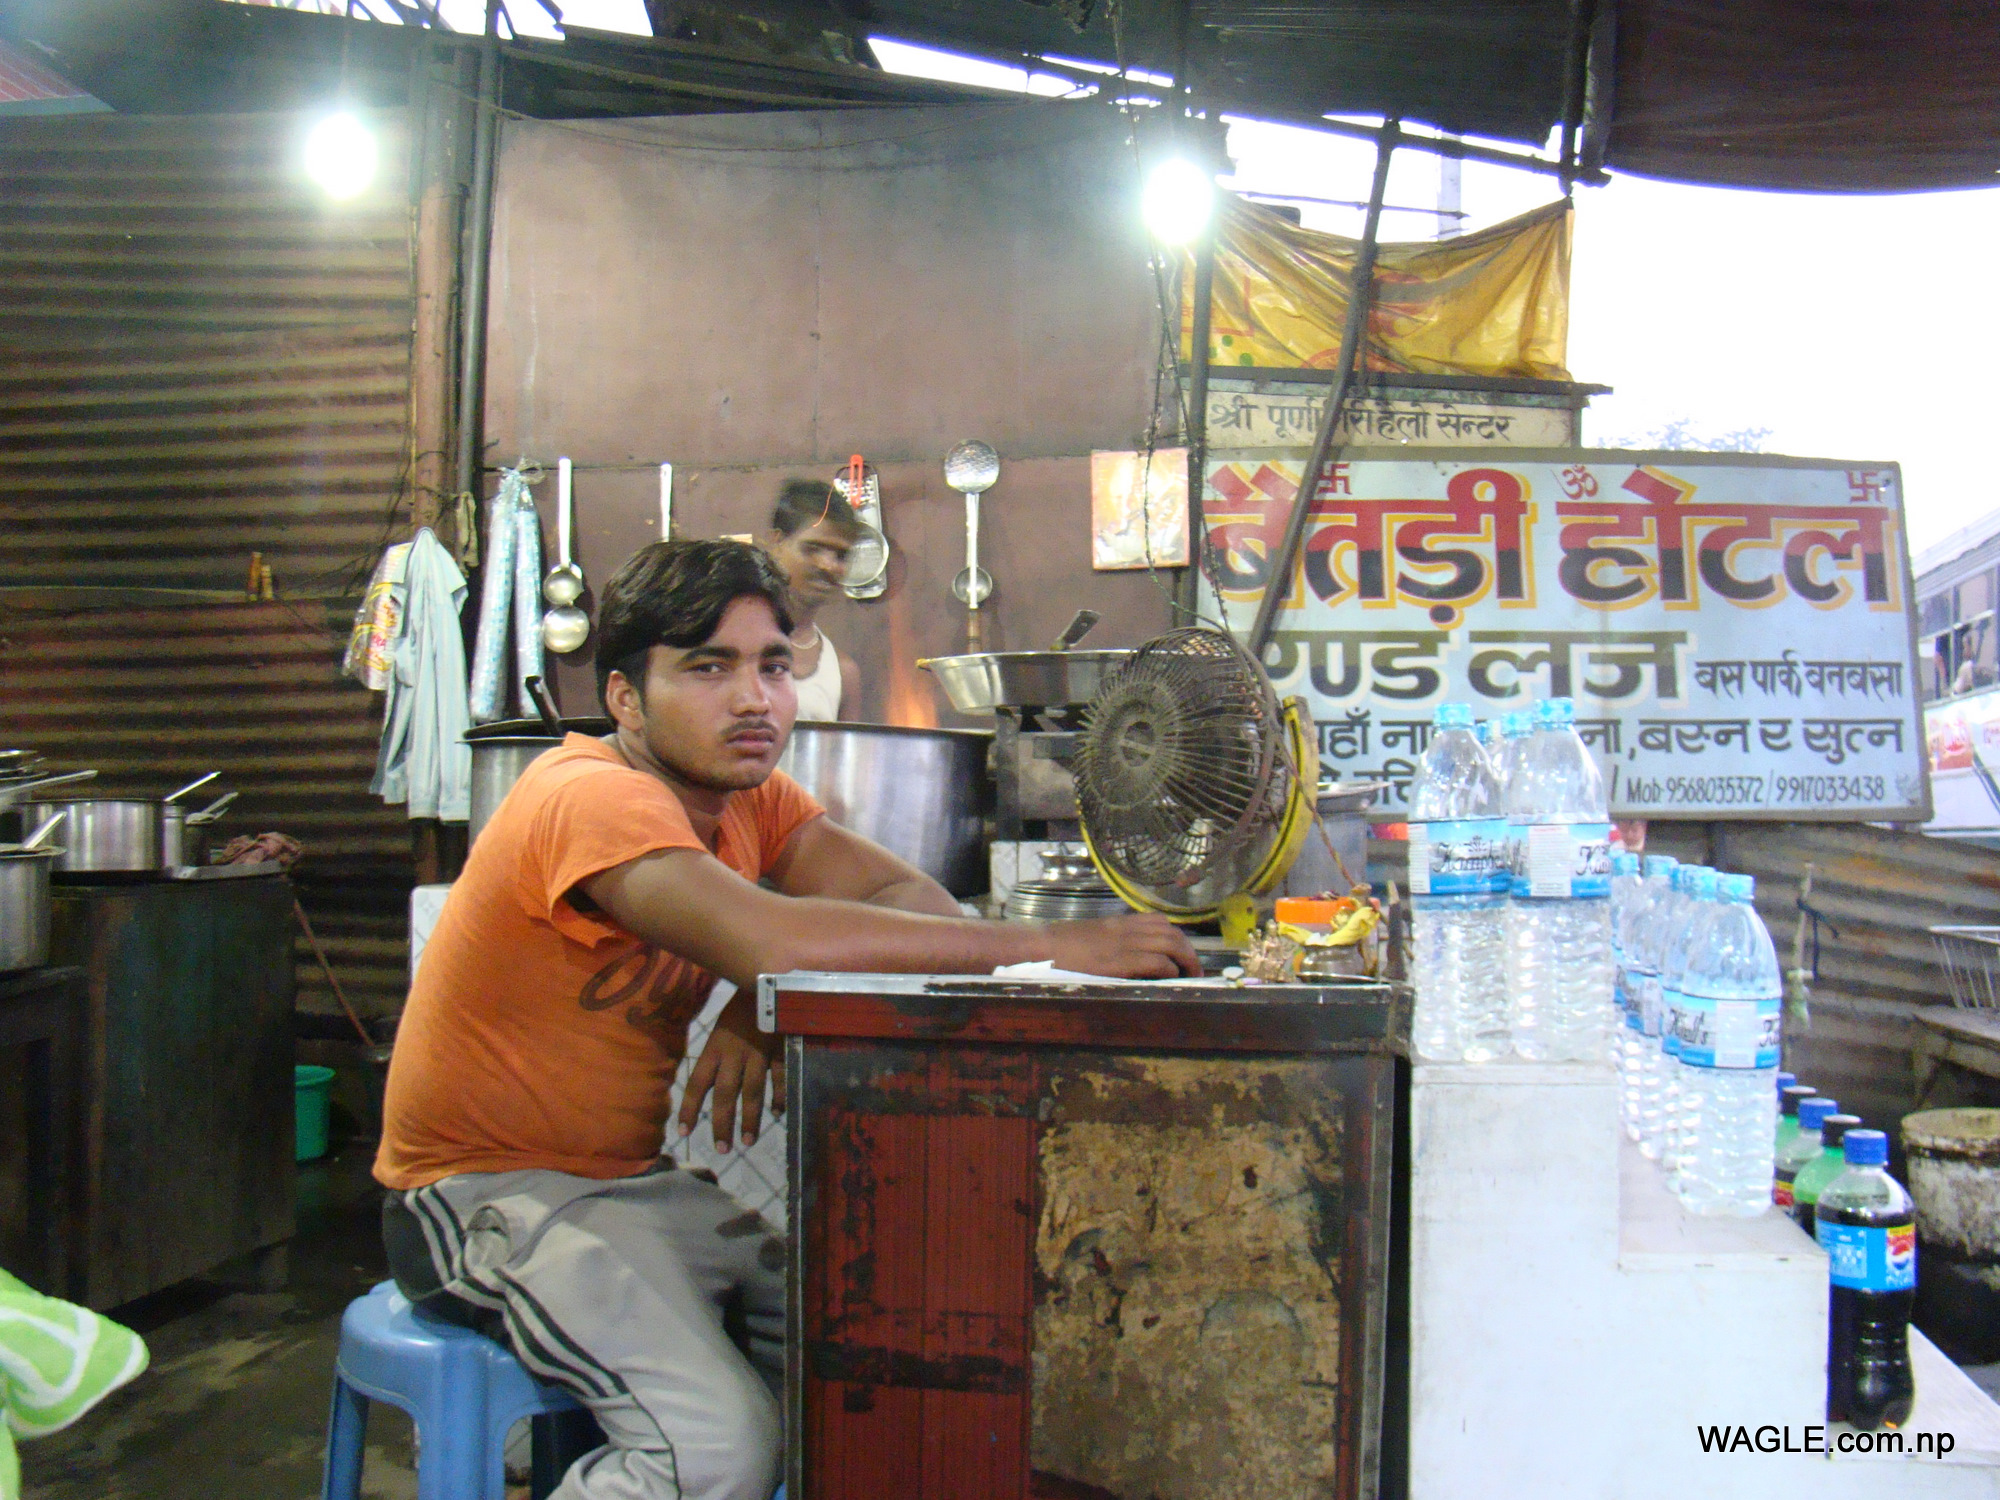 An Indian man waits for customers at the counter of his eatery- Baitadi Hotel- in Banbasa, India that is named after a district of Nepal in far west that borders India. The sign board assures good food in Nepali language. Banbasa, a border town, is the starting point for many buses that reach Delhi in about 9 hours.